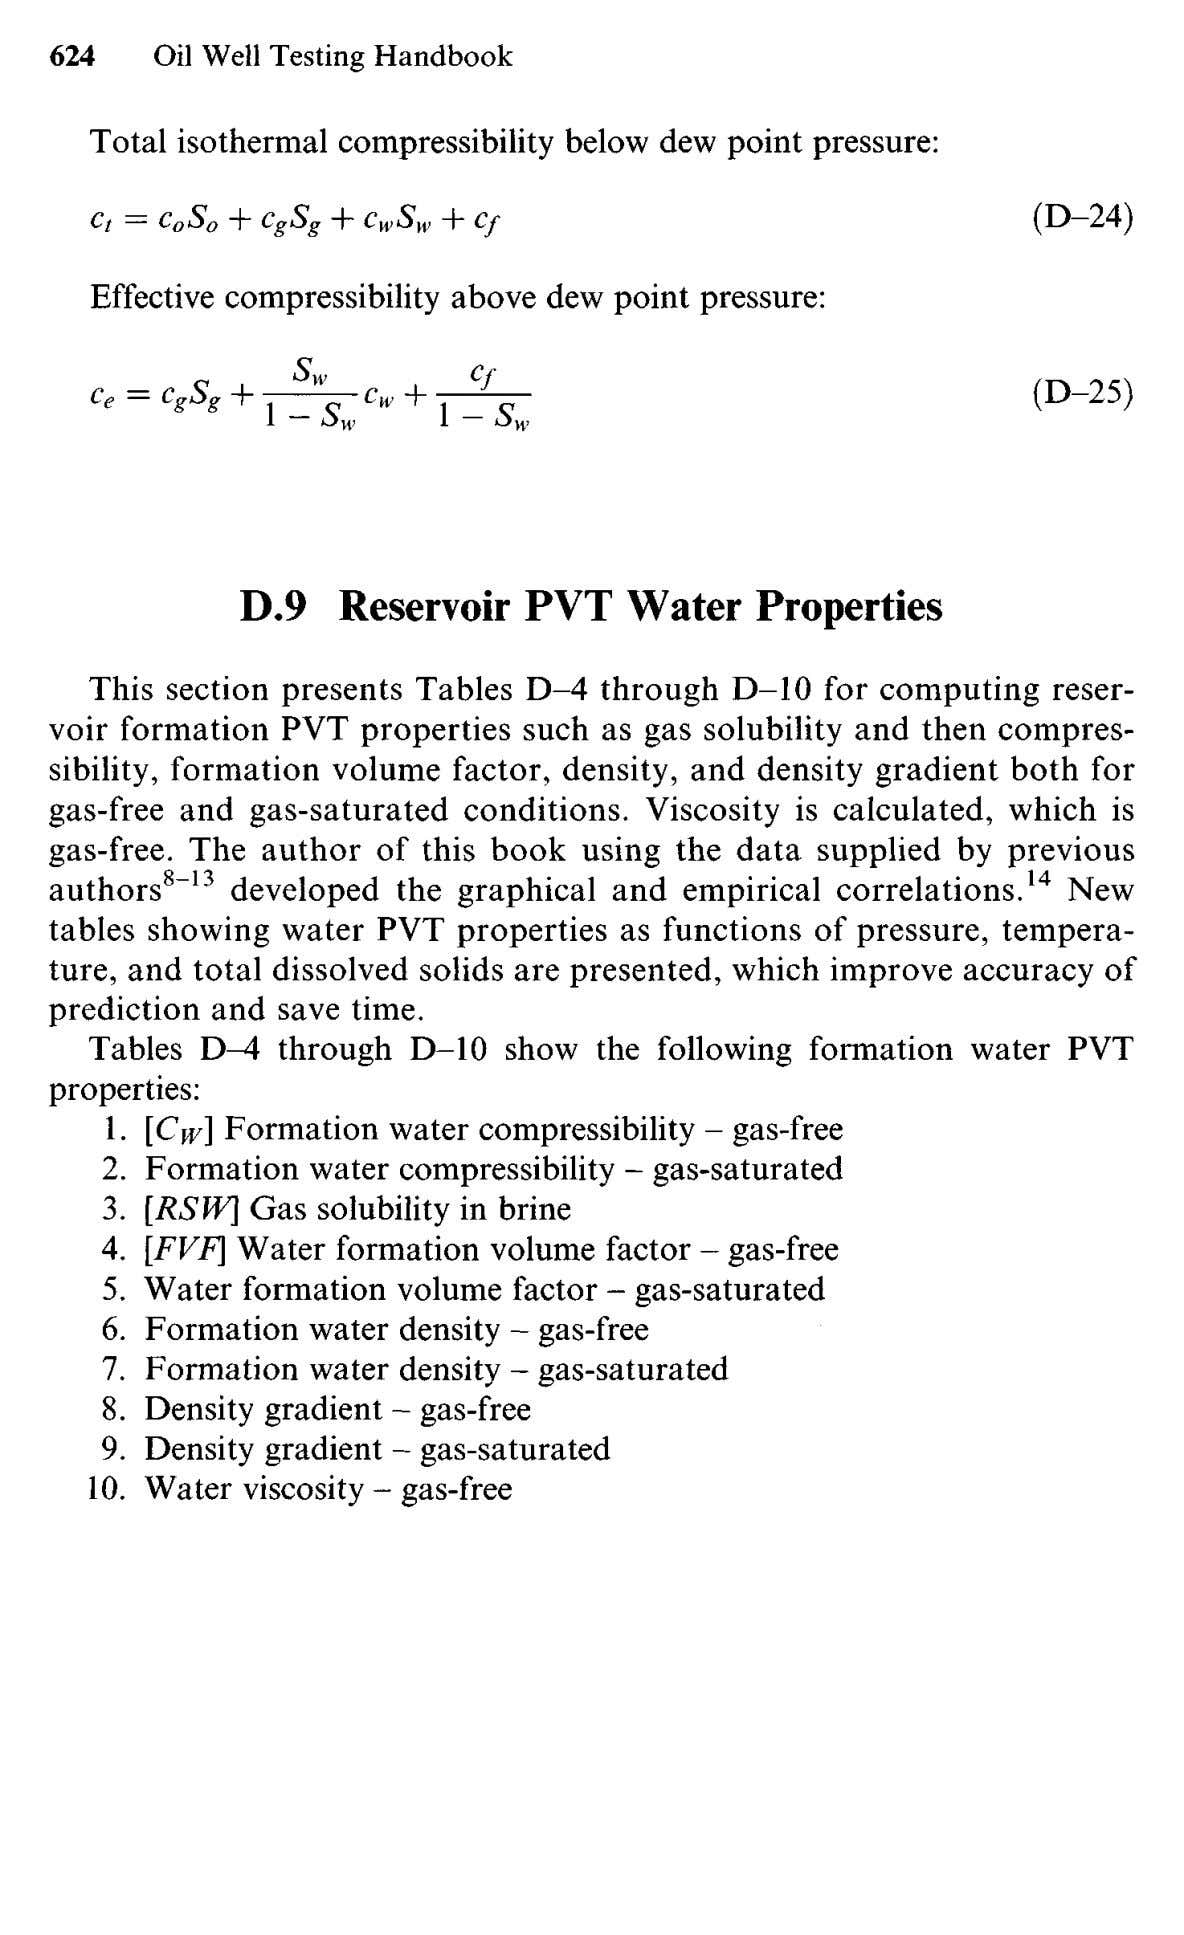 Total isothermal compressibility below dew point pressure: (D-24) Effective compressibility above dew point pressure: